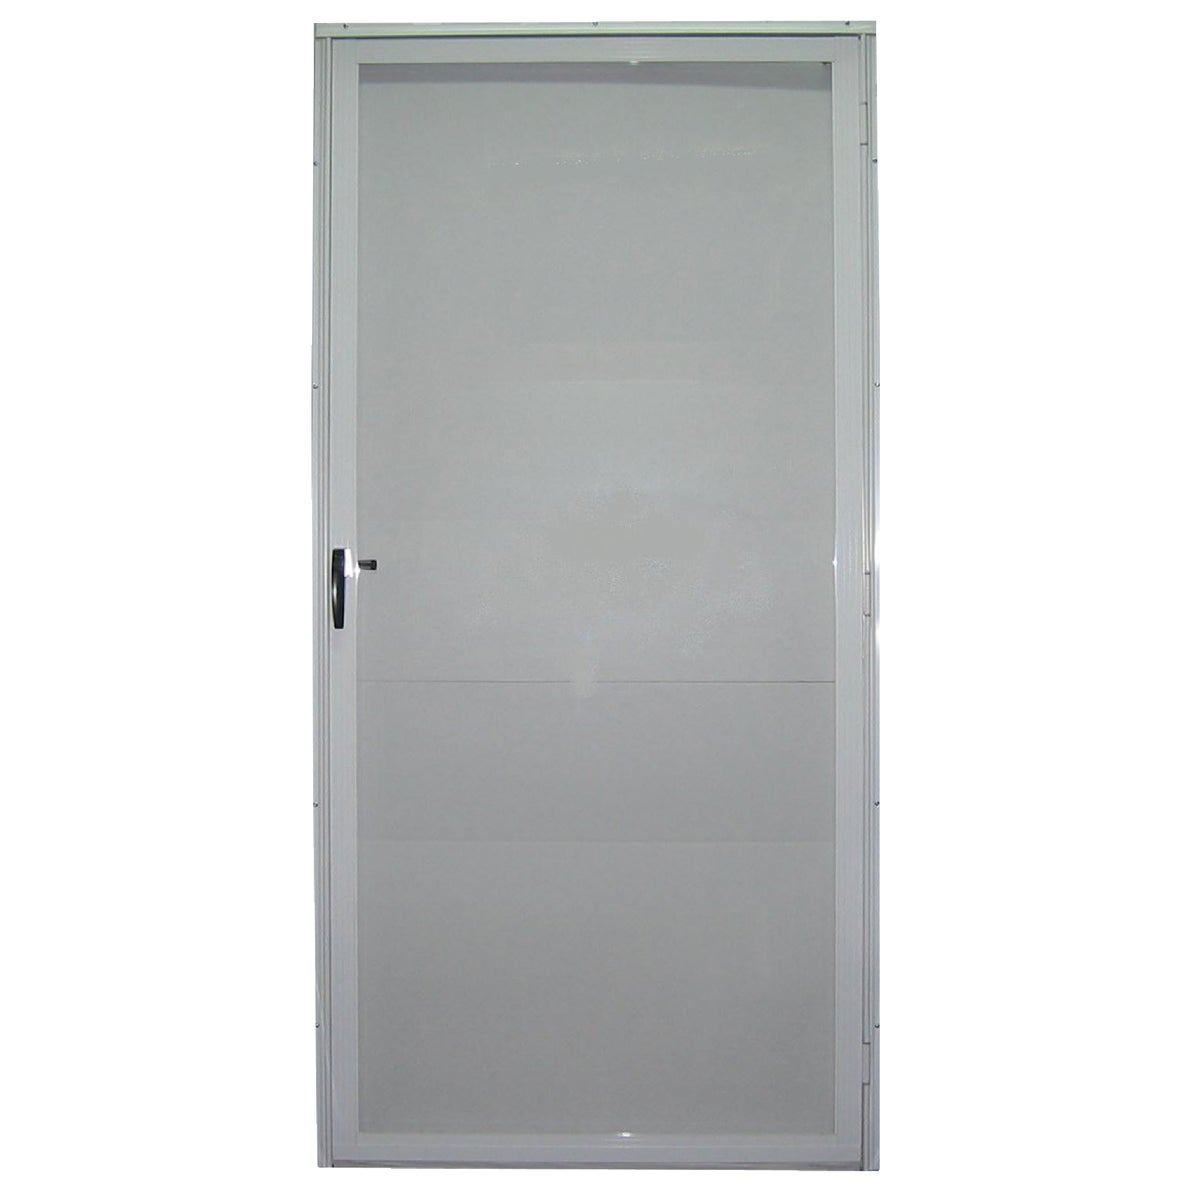 265 3068 RH WHT DOOR - F06030 by Croft Llc